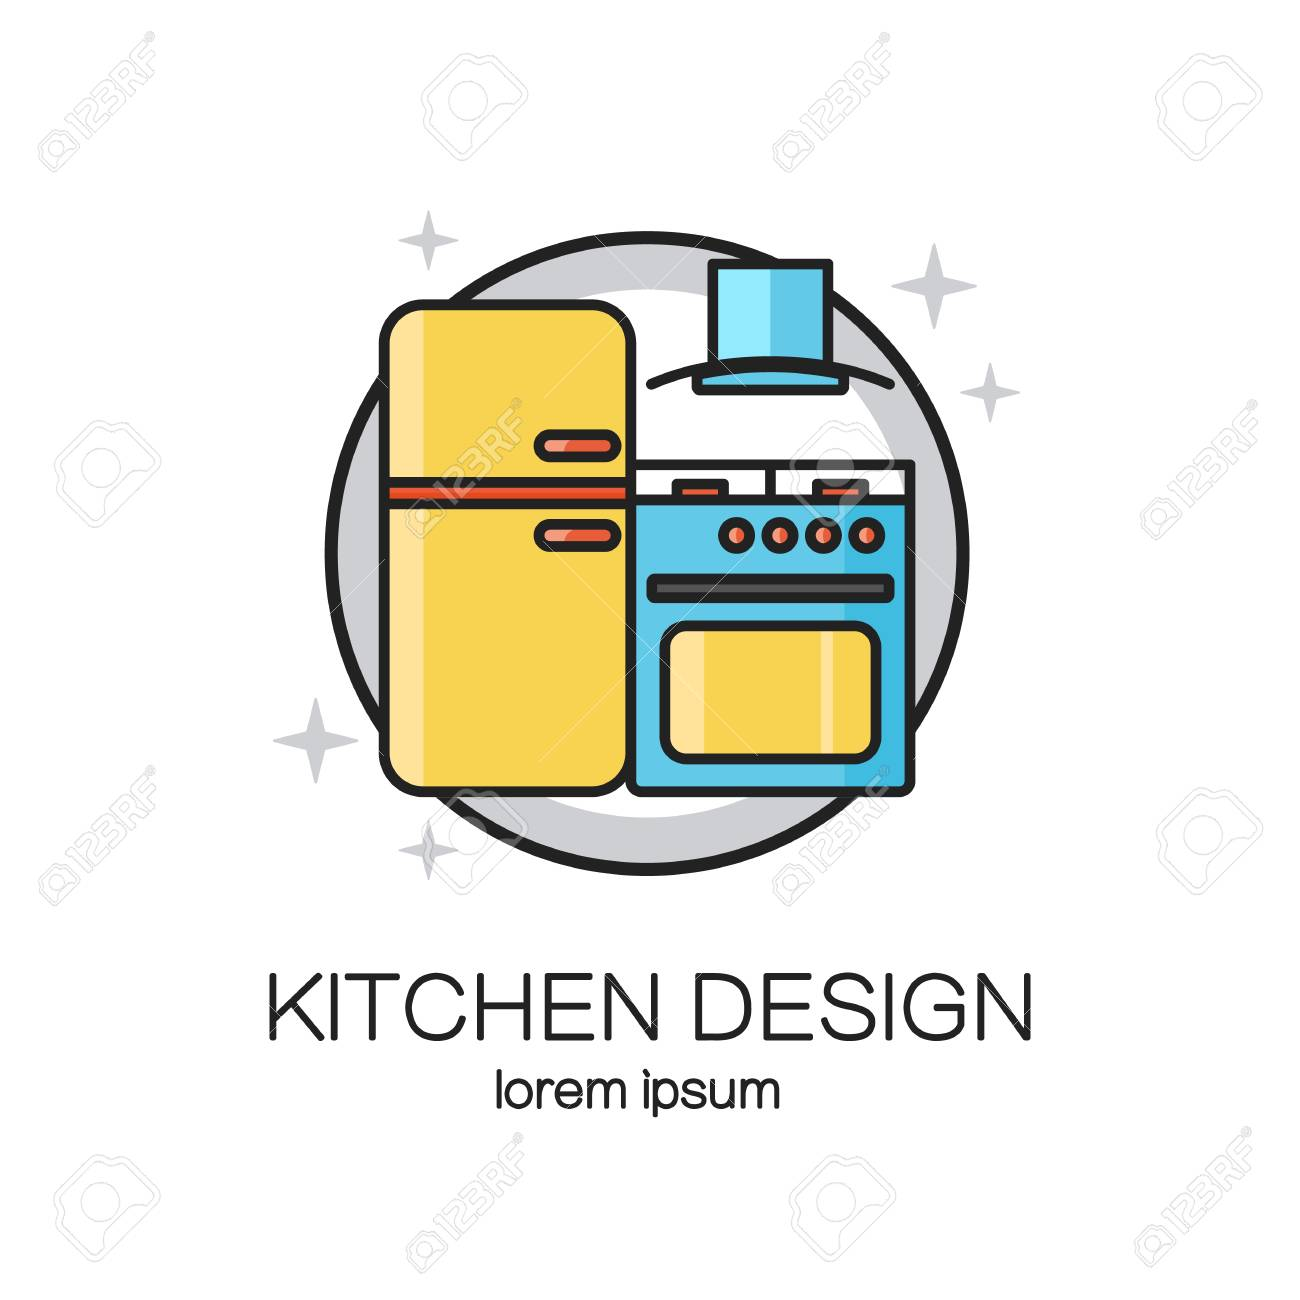 kitchen design line icon web template royalty free cliparts, vectors